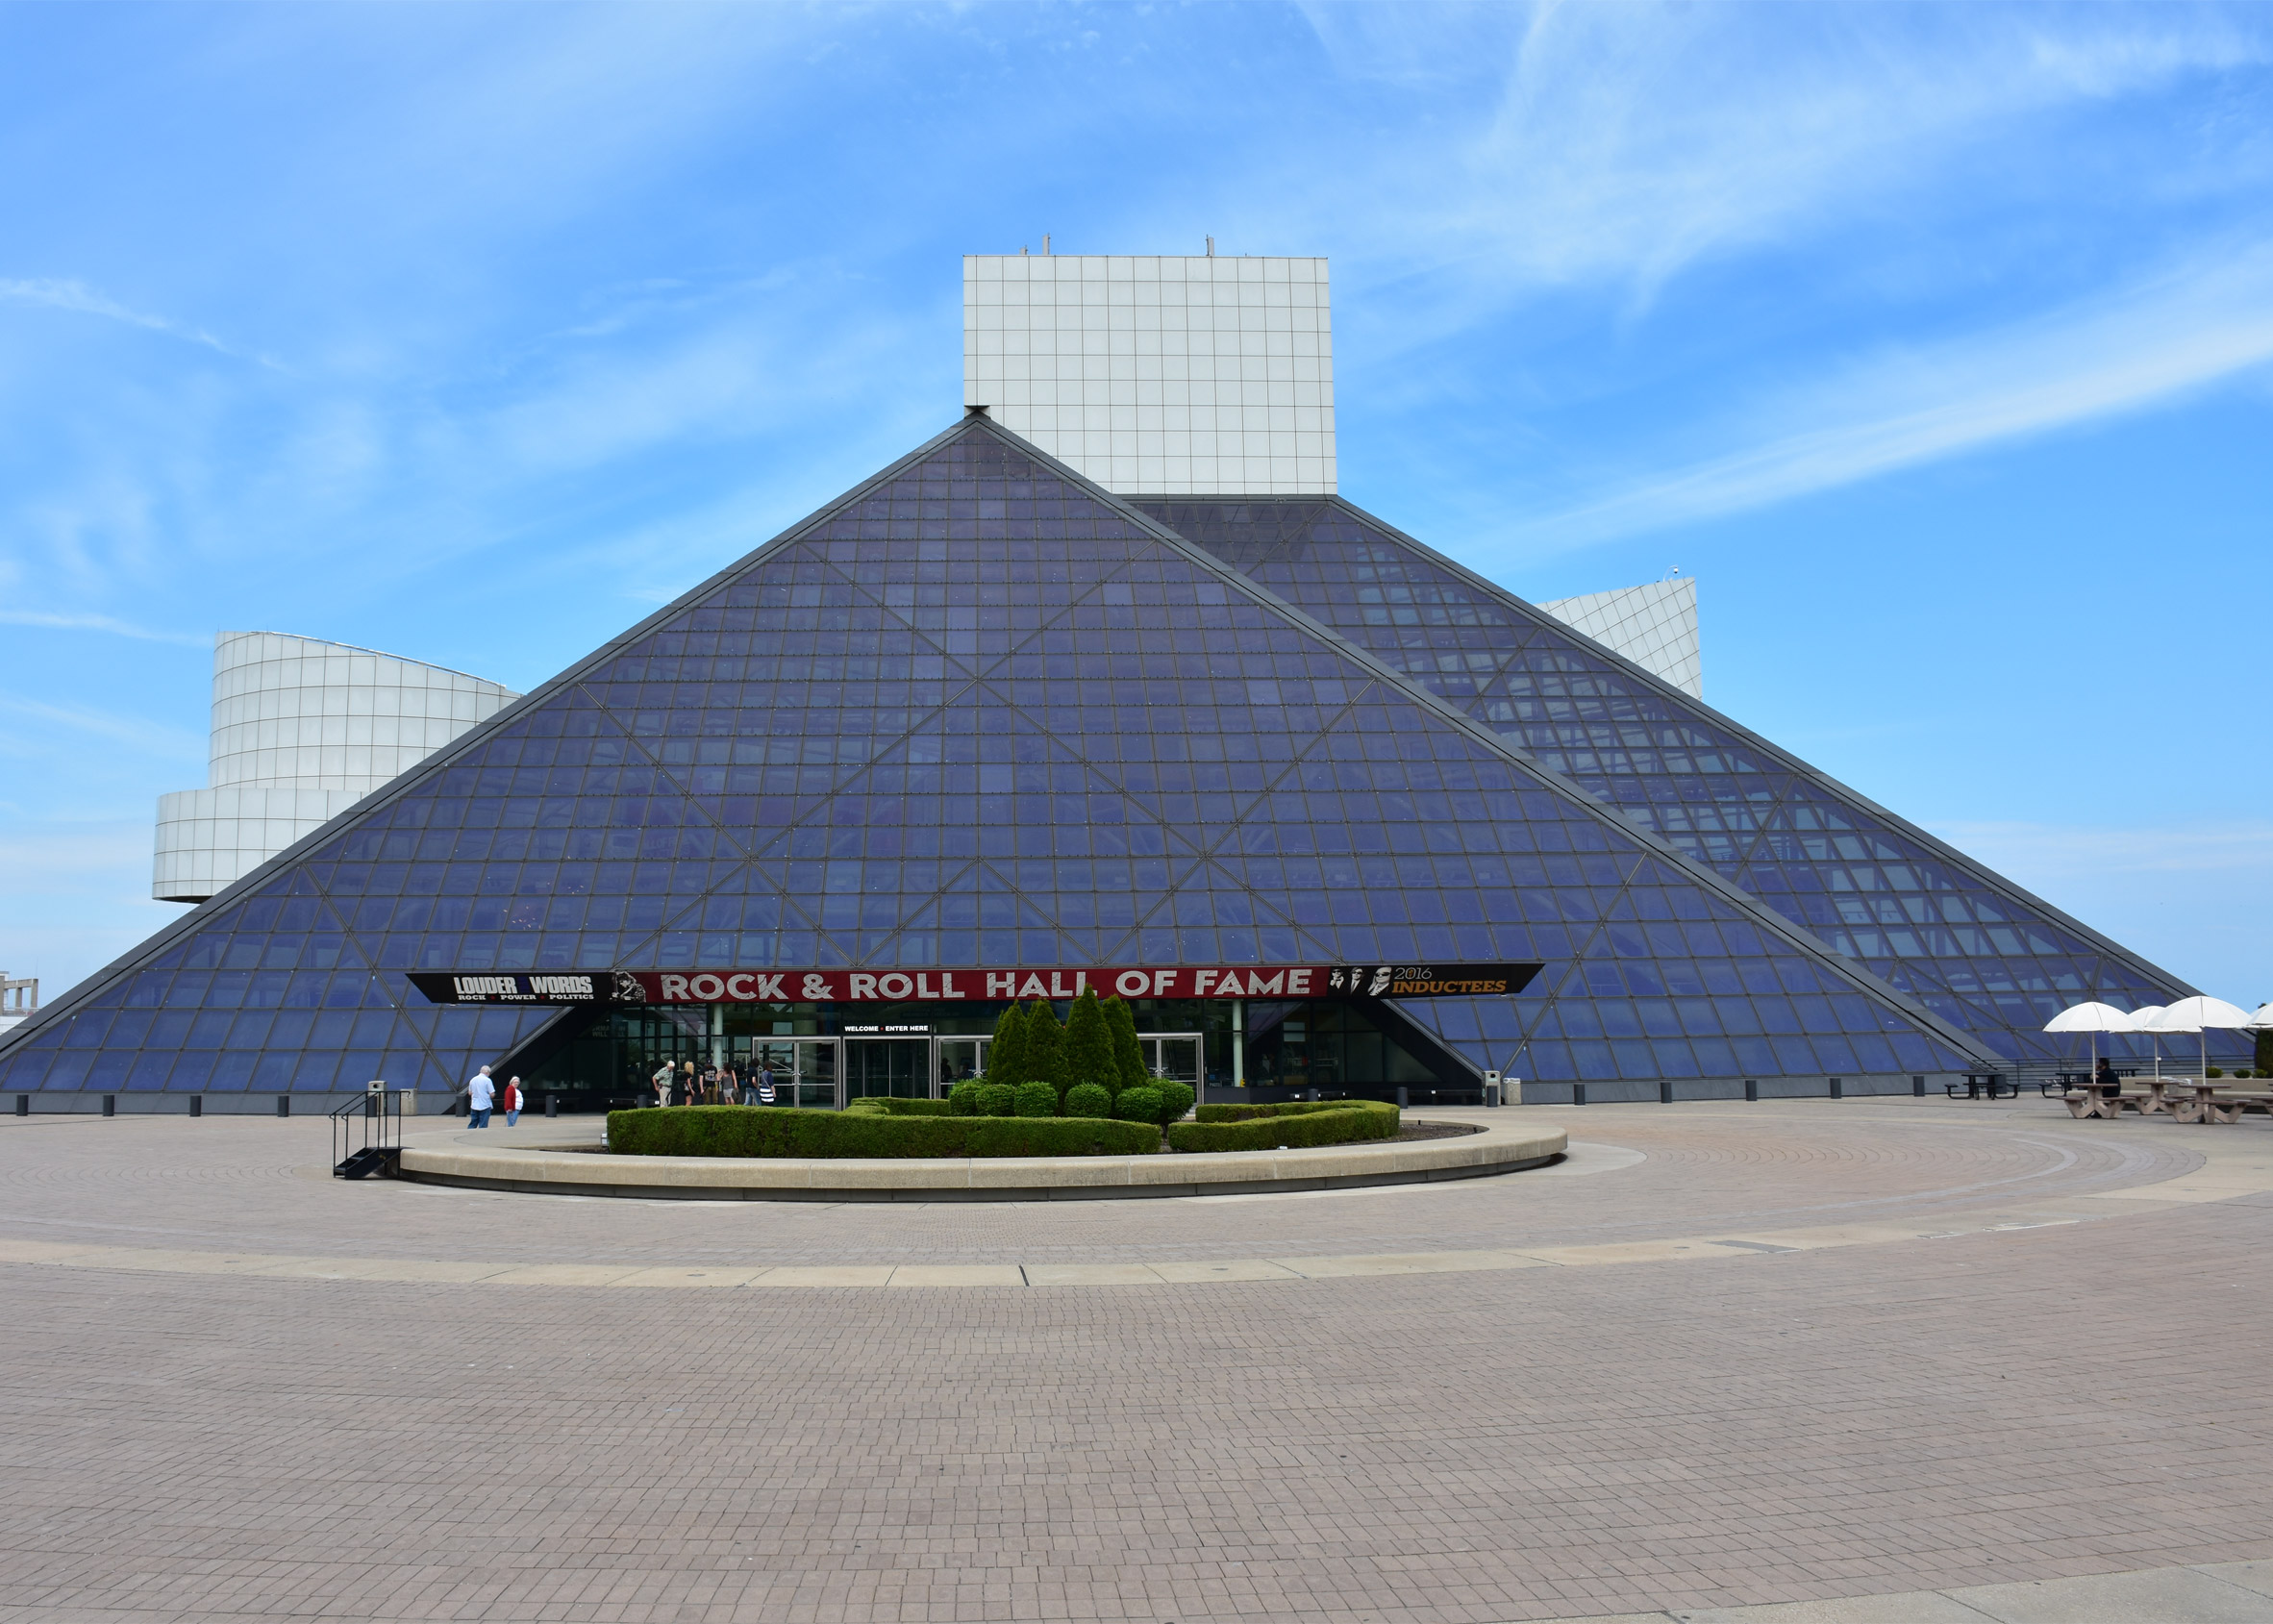 Rock and Roll Hall of Fame by I.M. Pei